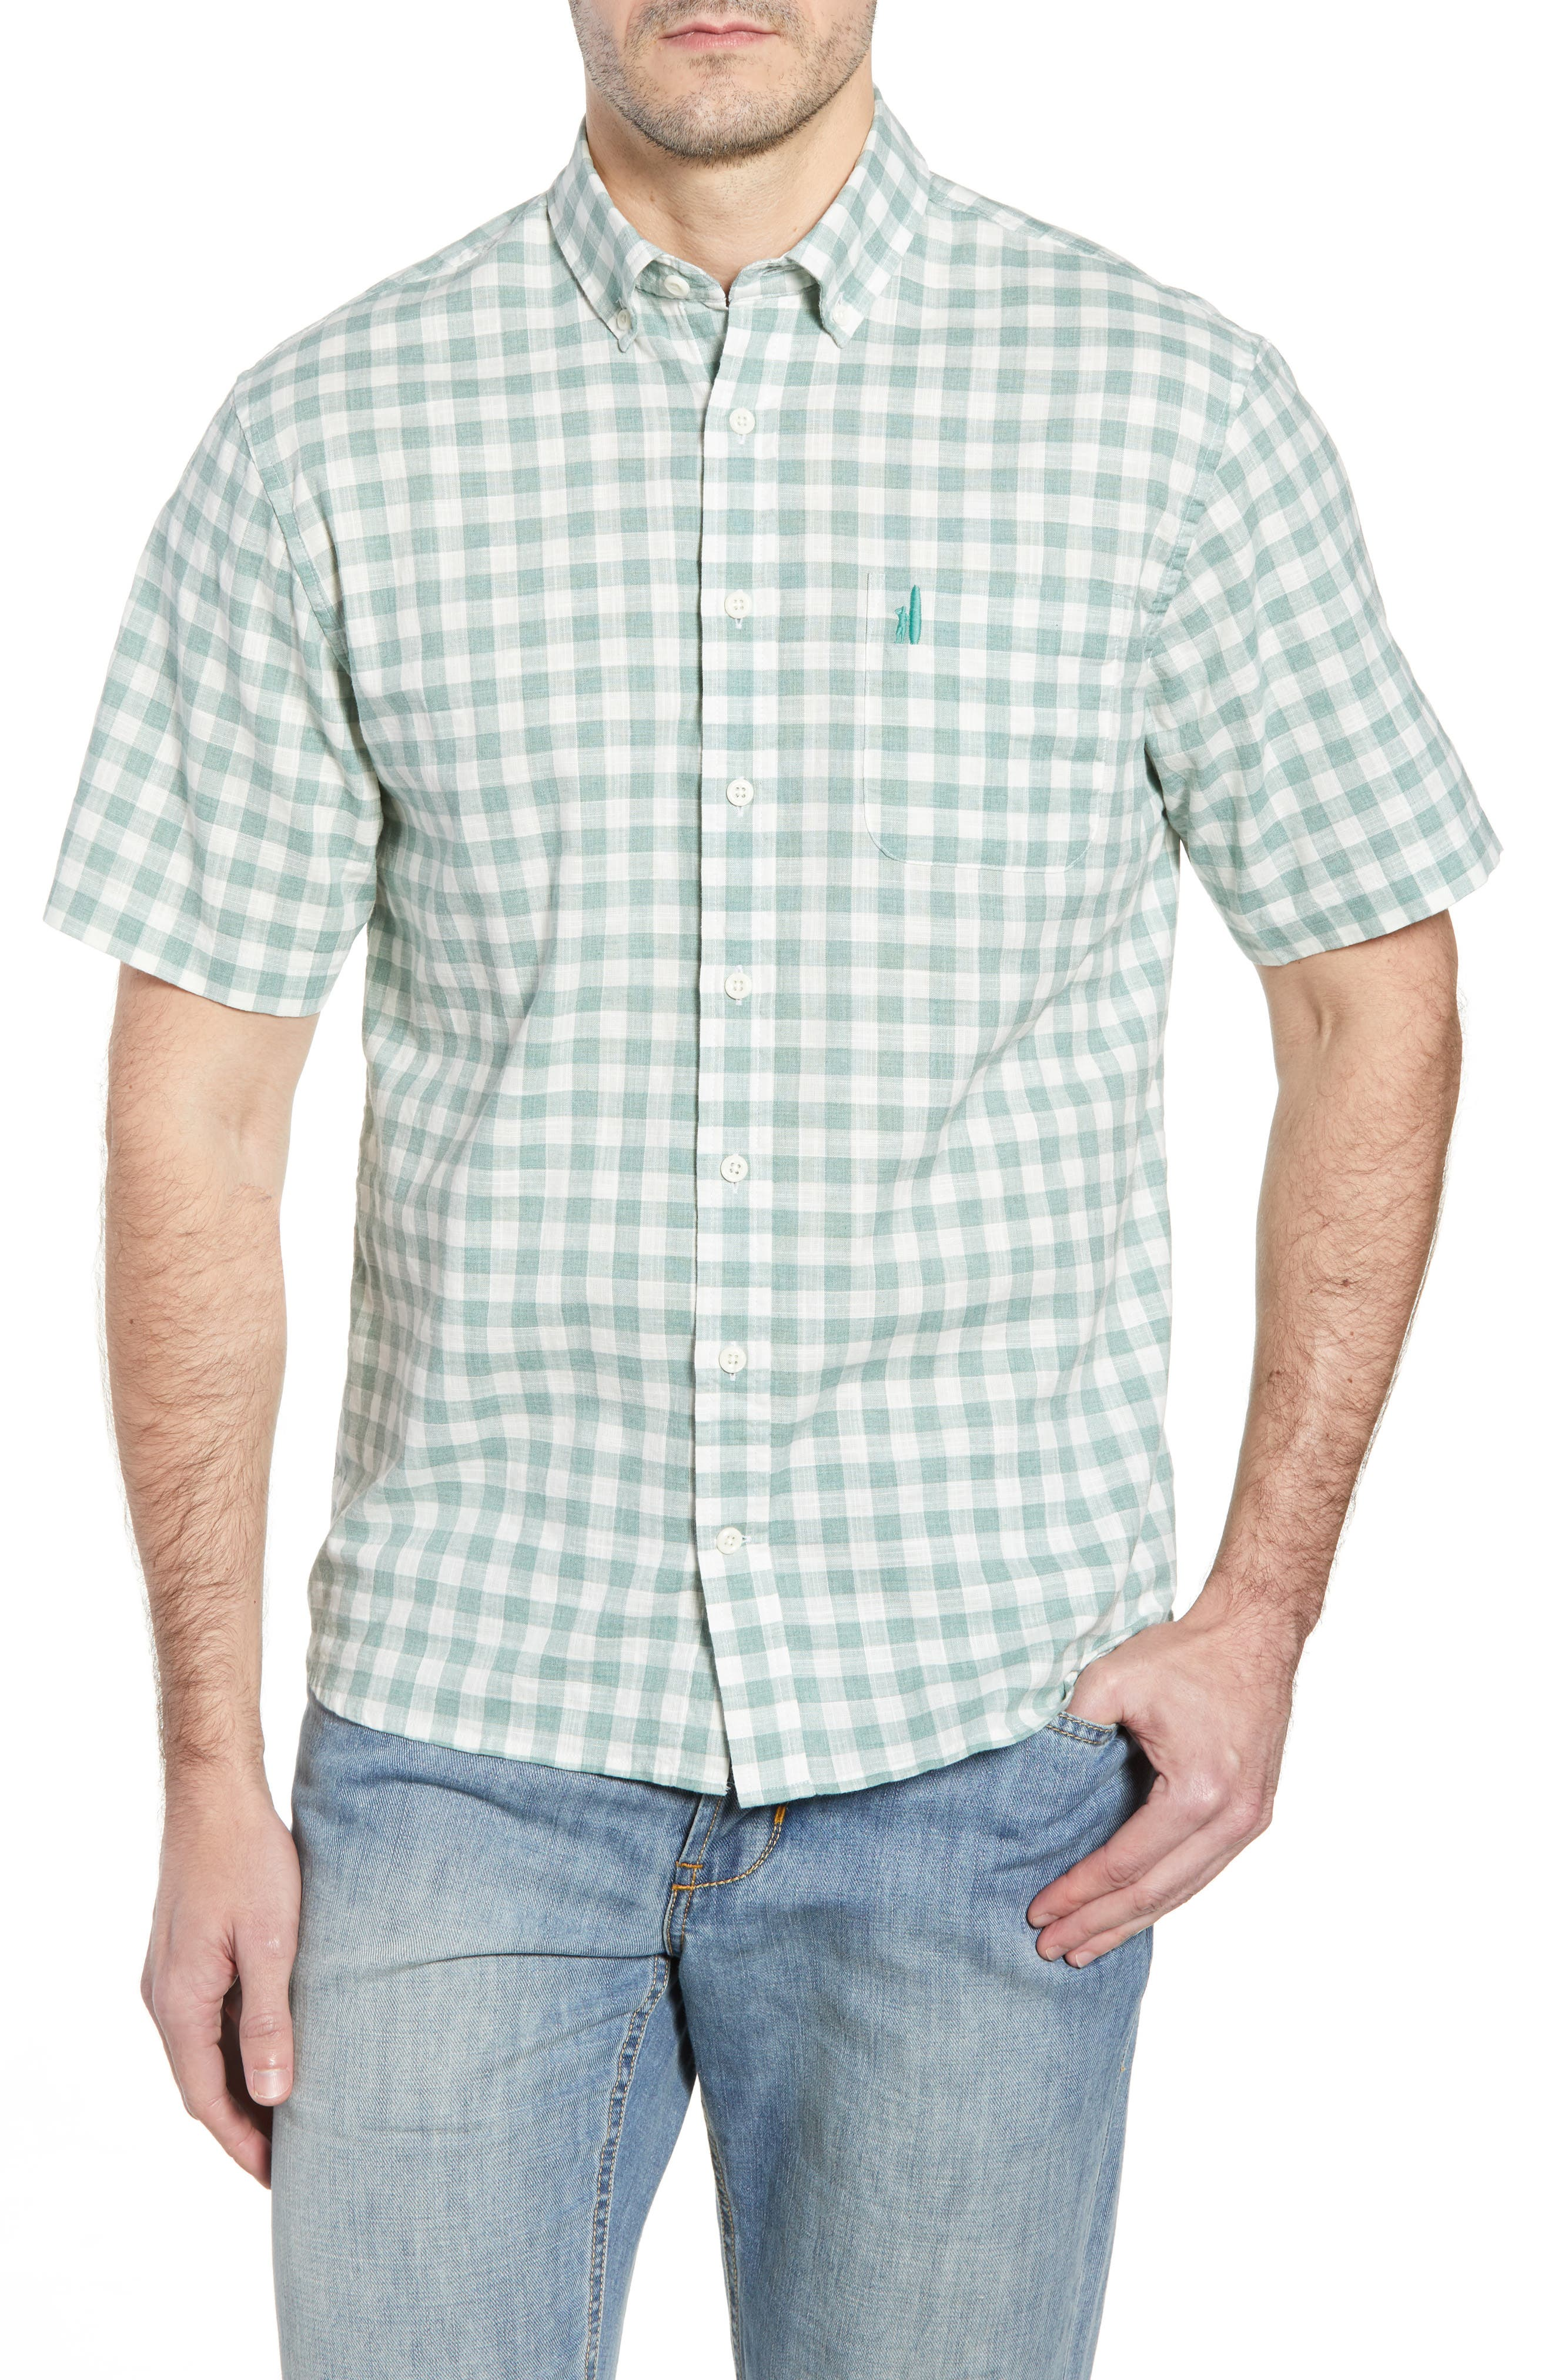 Watts Classic Fit Gingham Sport Shirt,                         Main,                         color, CLOVER